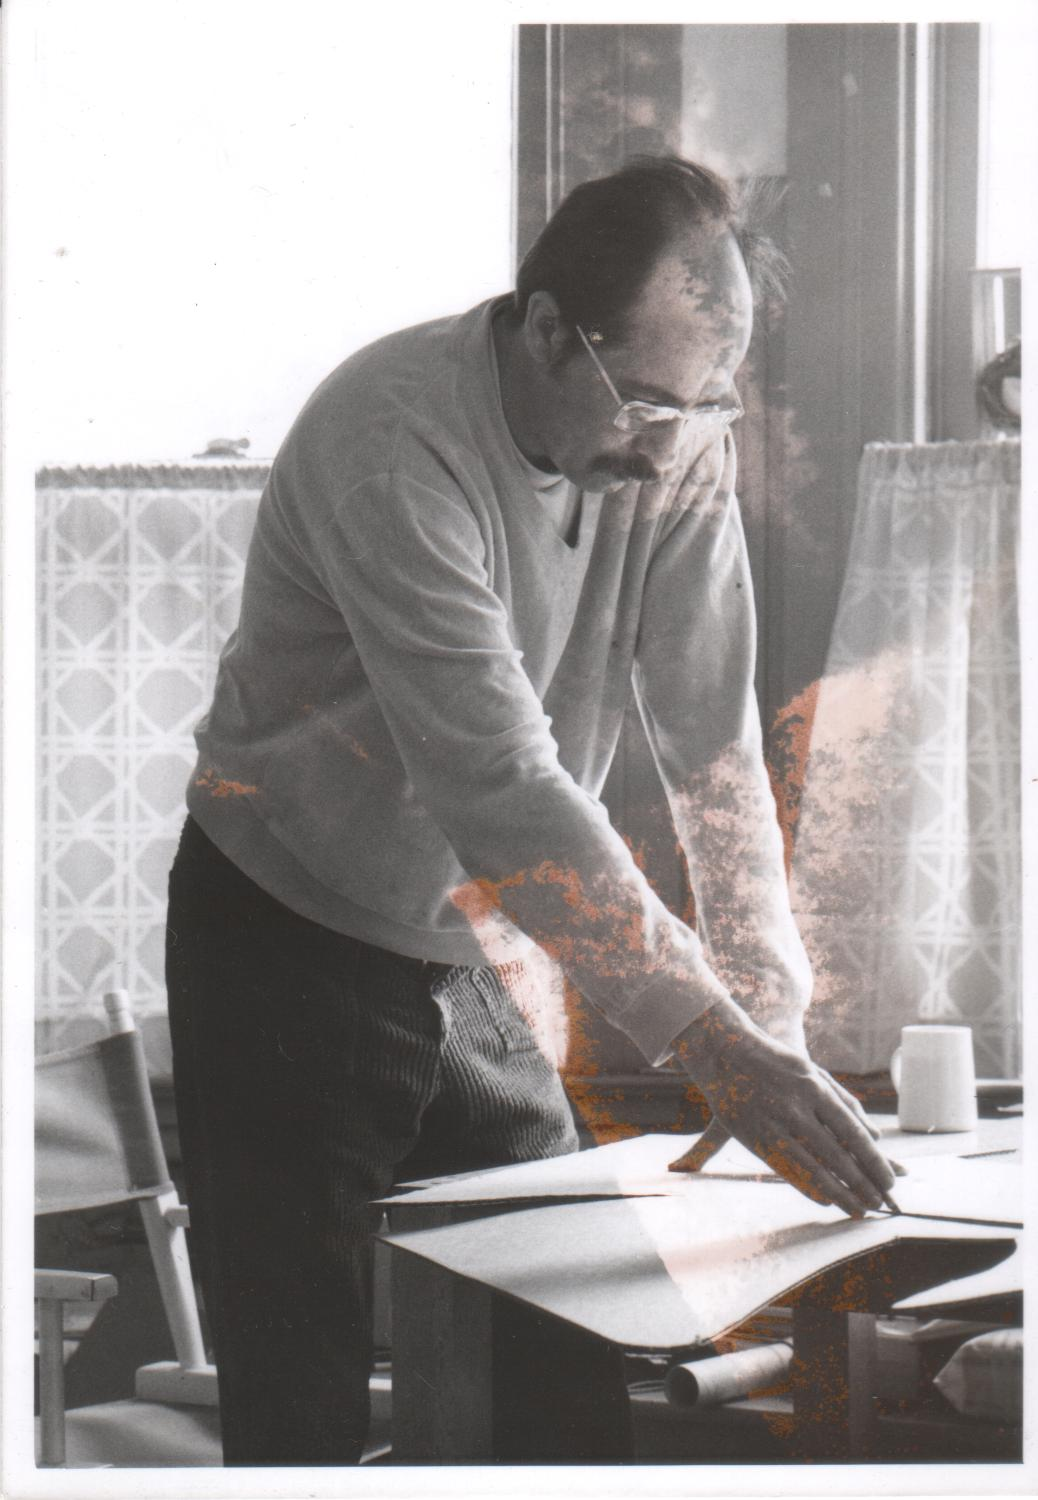 Horst Leissl himself working on a painting. Credit to https://theartofhorstliessl.weebly.com/